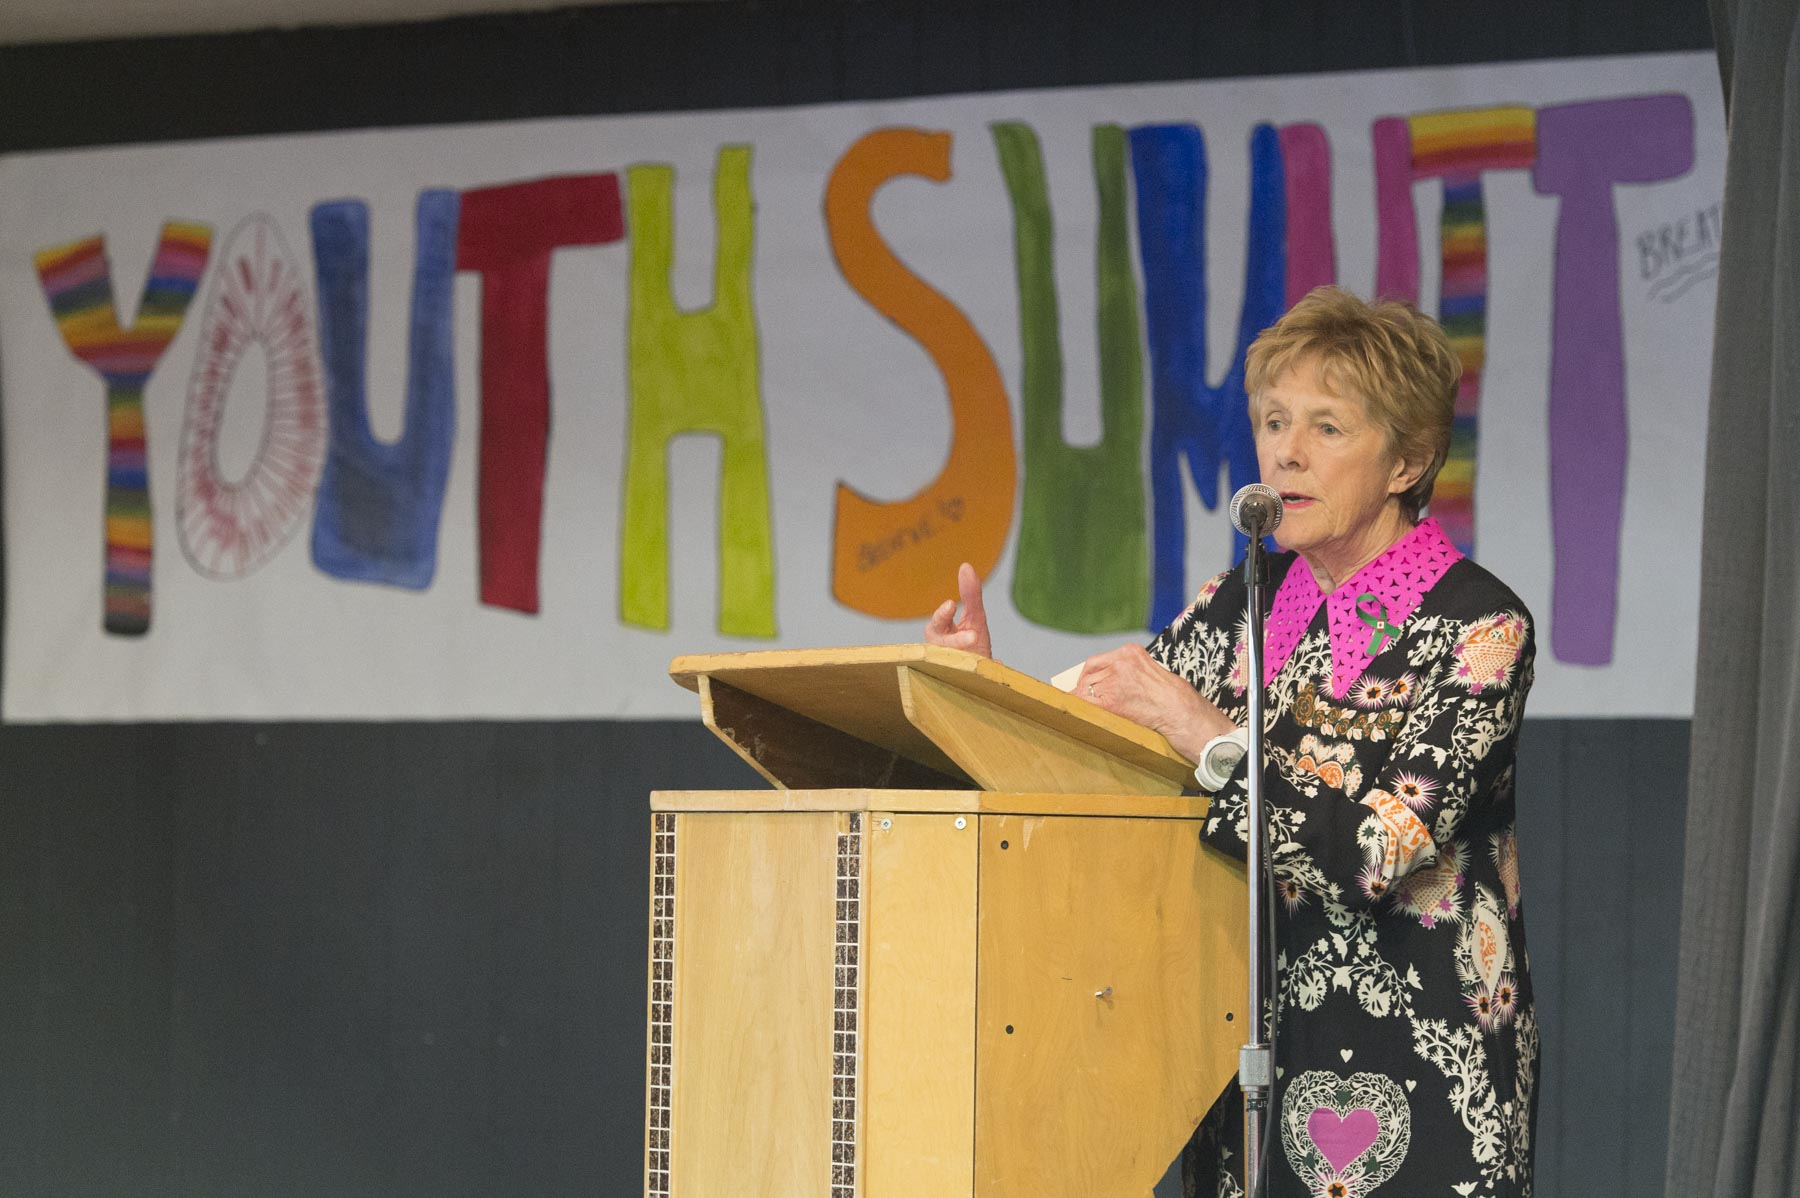 Their Excellencies the Right Honourable David Johnston, Governor General of Canada, and Mrs. Sharon Johnston participated in the Youth Summit on Mental Health Wellness at St. Michael's High School in Low, Quebec, during which Her Excellency will deliver remarks.